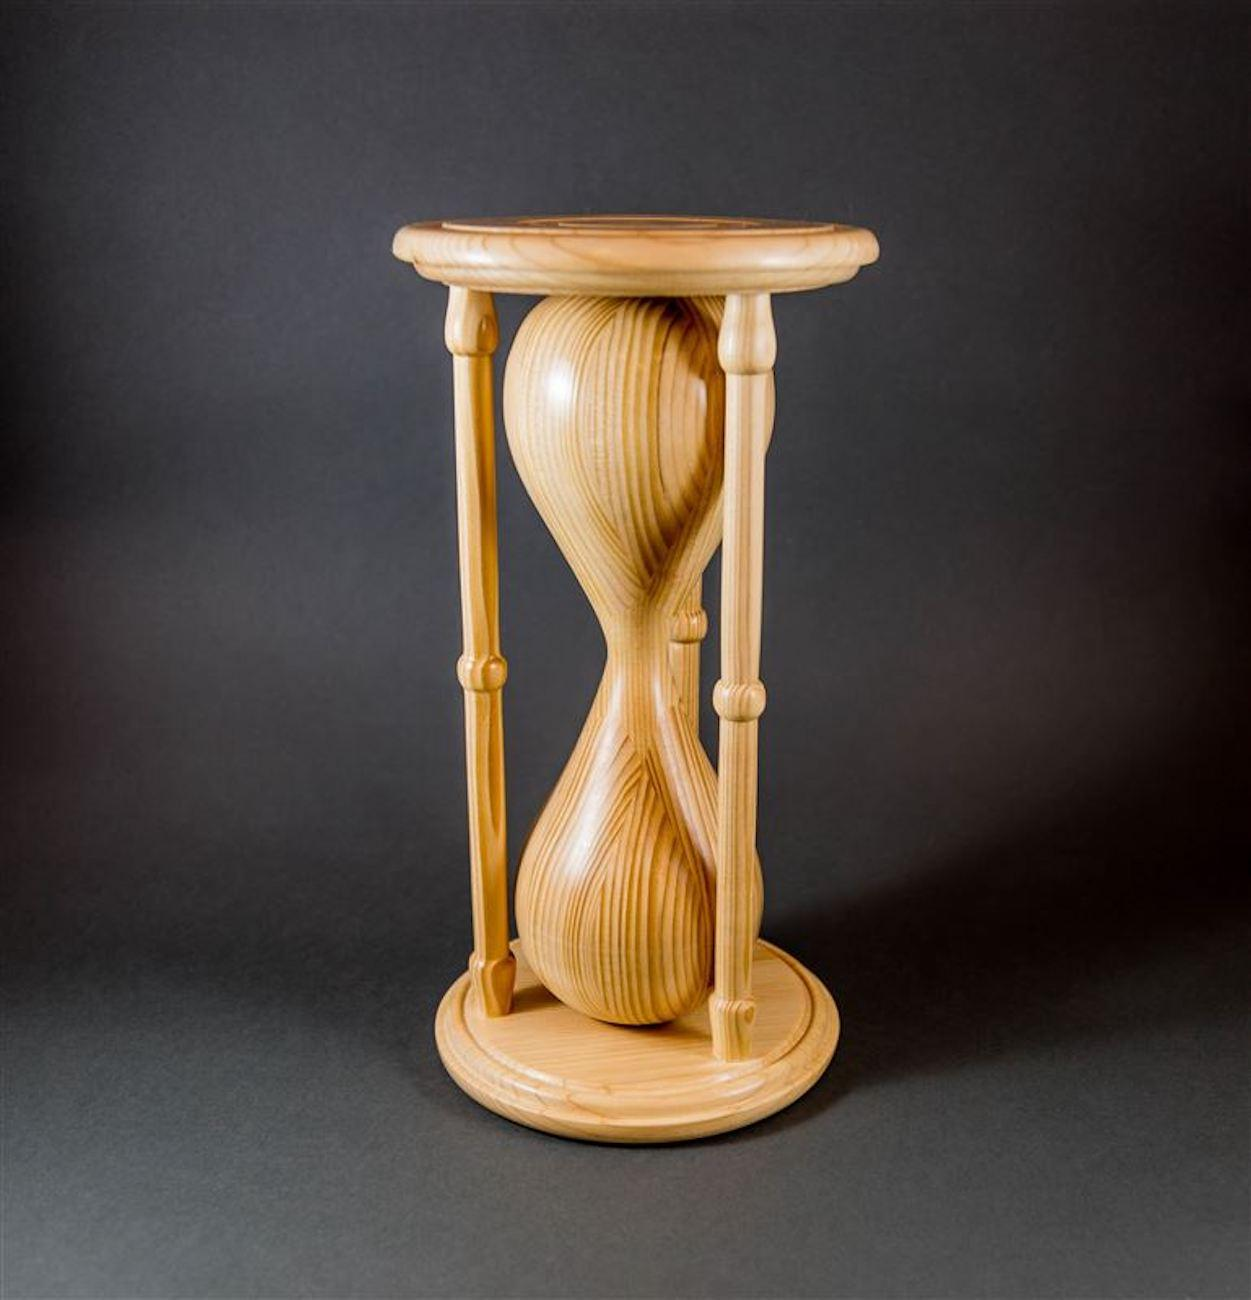 """Got No Time"" by Beverly Connelly was made from a standard pine 2x4 as a challenge to the turners to use a 2x4 in any way they wanted. / Image courtesy of the Ohio Valley Woodturners Guild // Published: 4.18.19"